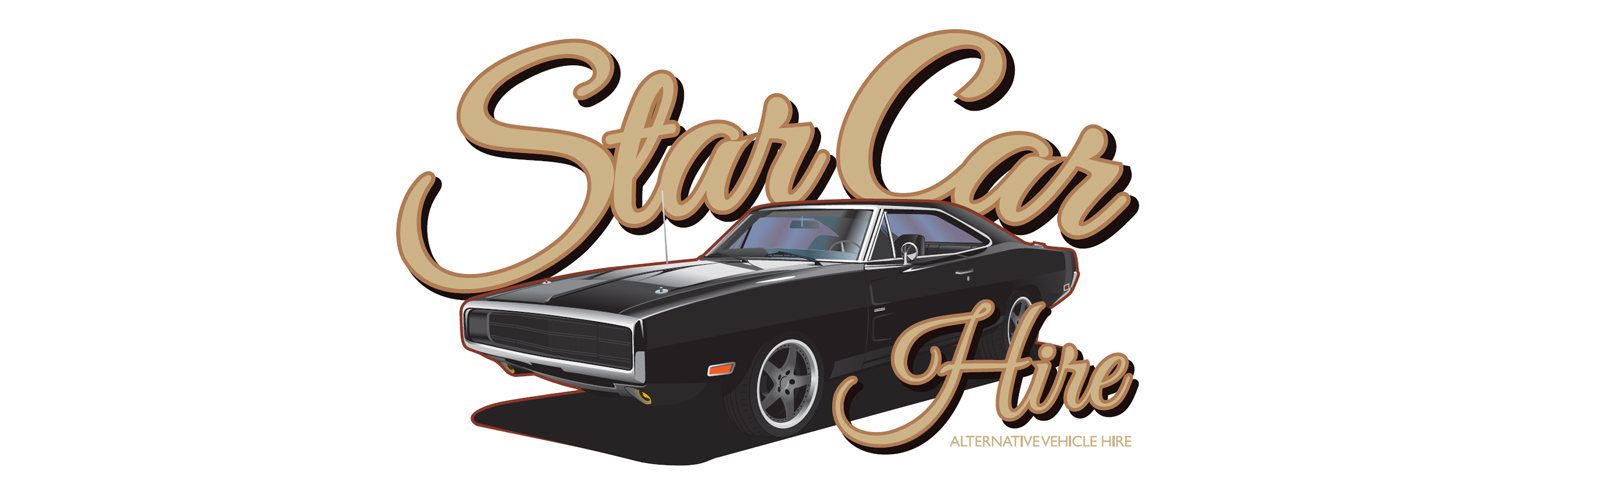 www.starcarhire.co.uk